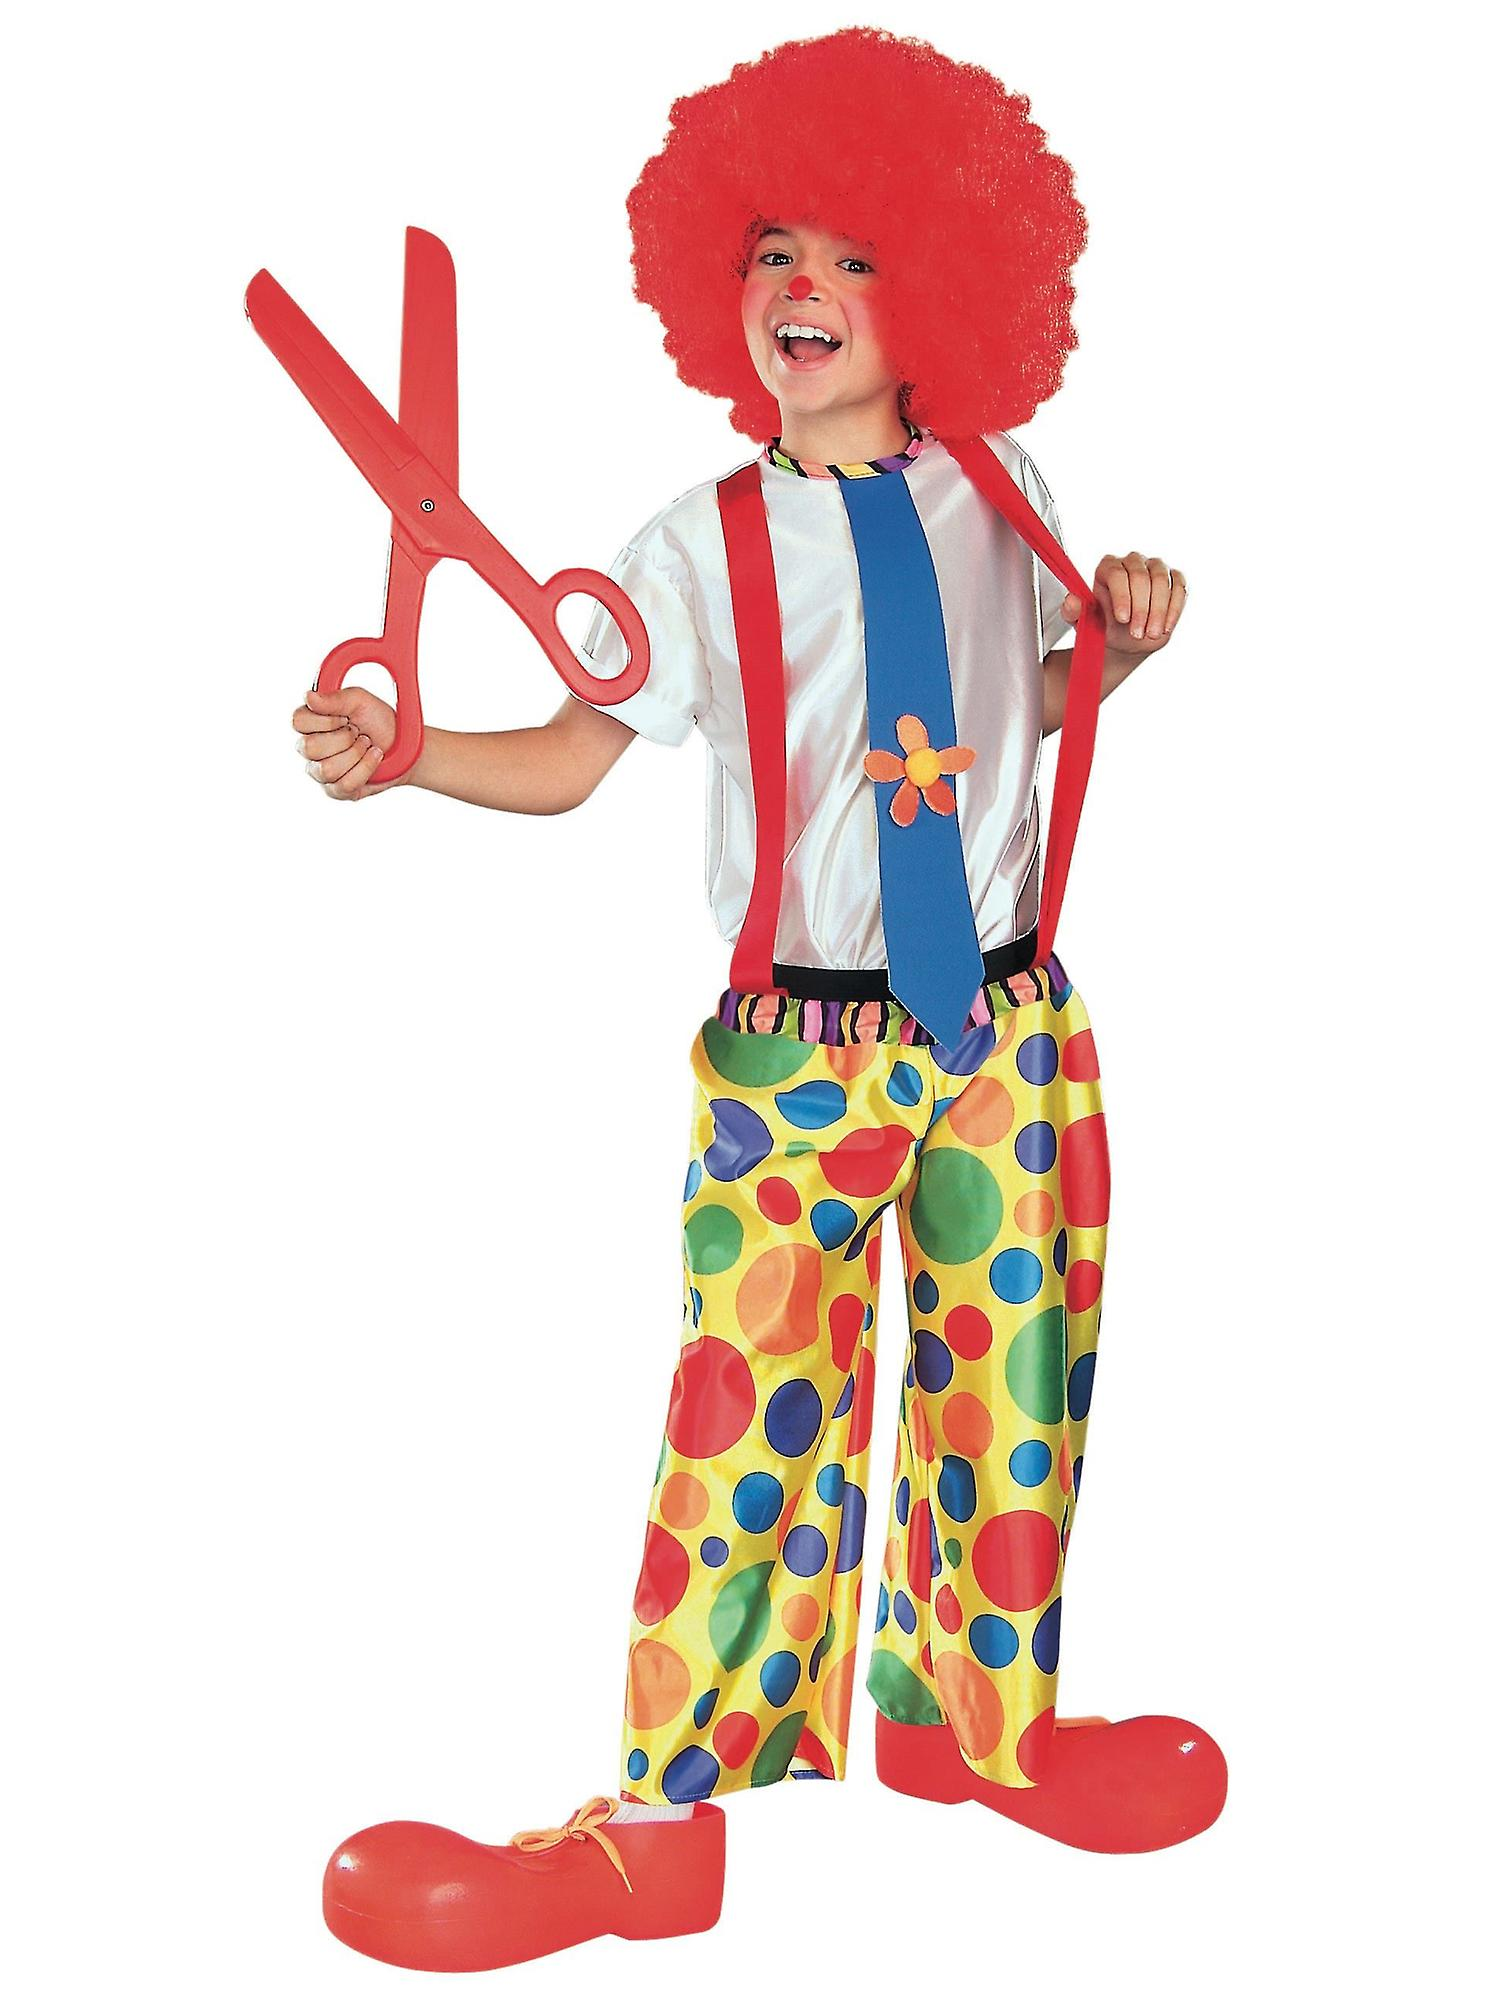 Chuckle King Clown Circus Birthday Party Dress Up Book Week Boys Costume